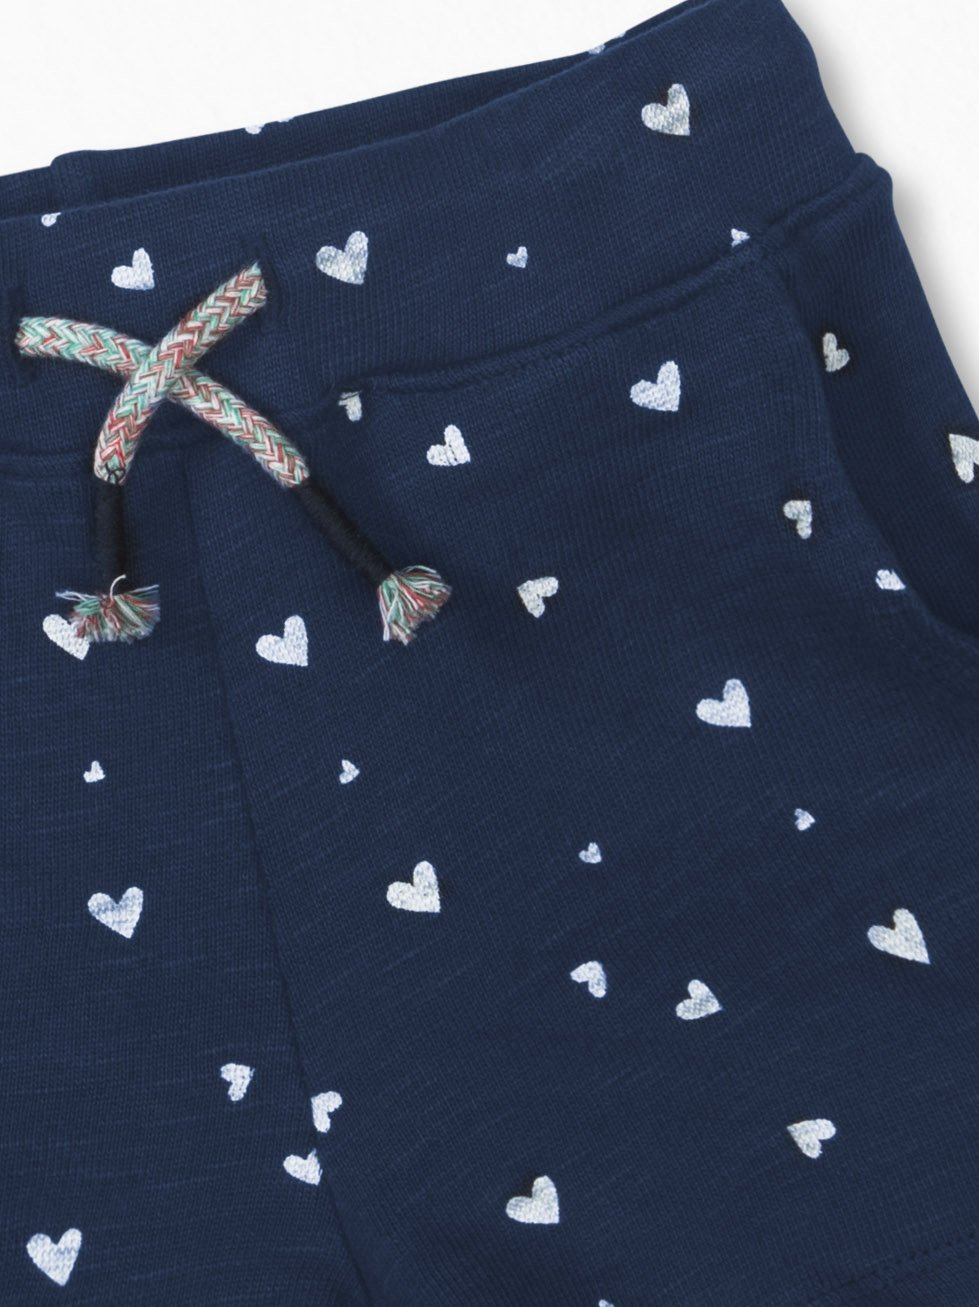 Colored Organics Girls Organic Nika Sport Shorts - Navy/White Heart Print - 2T by Colored Organics (Image #4)